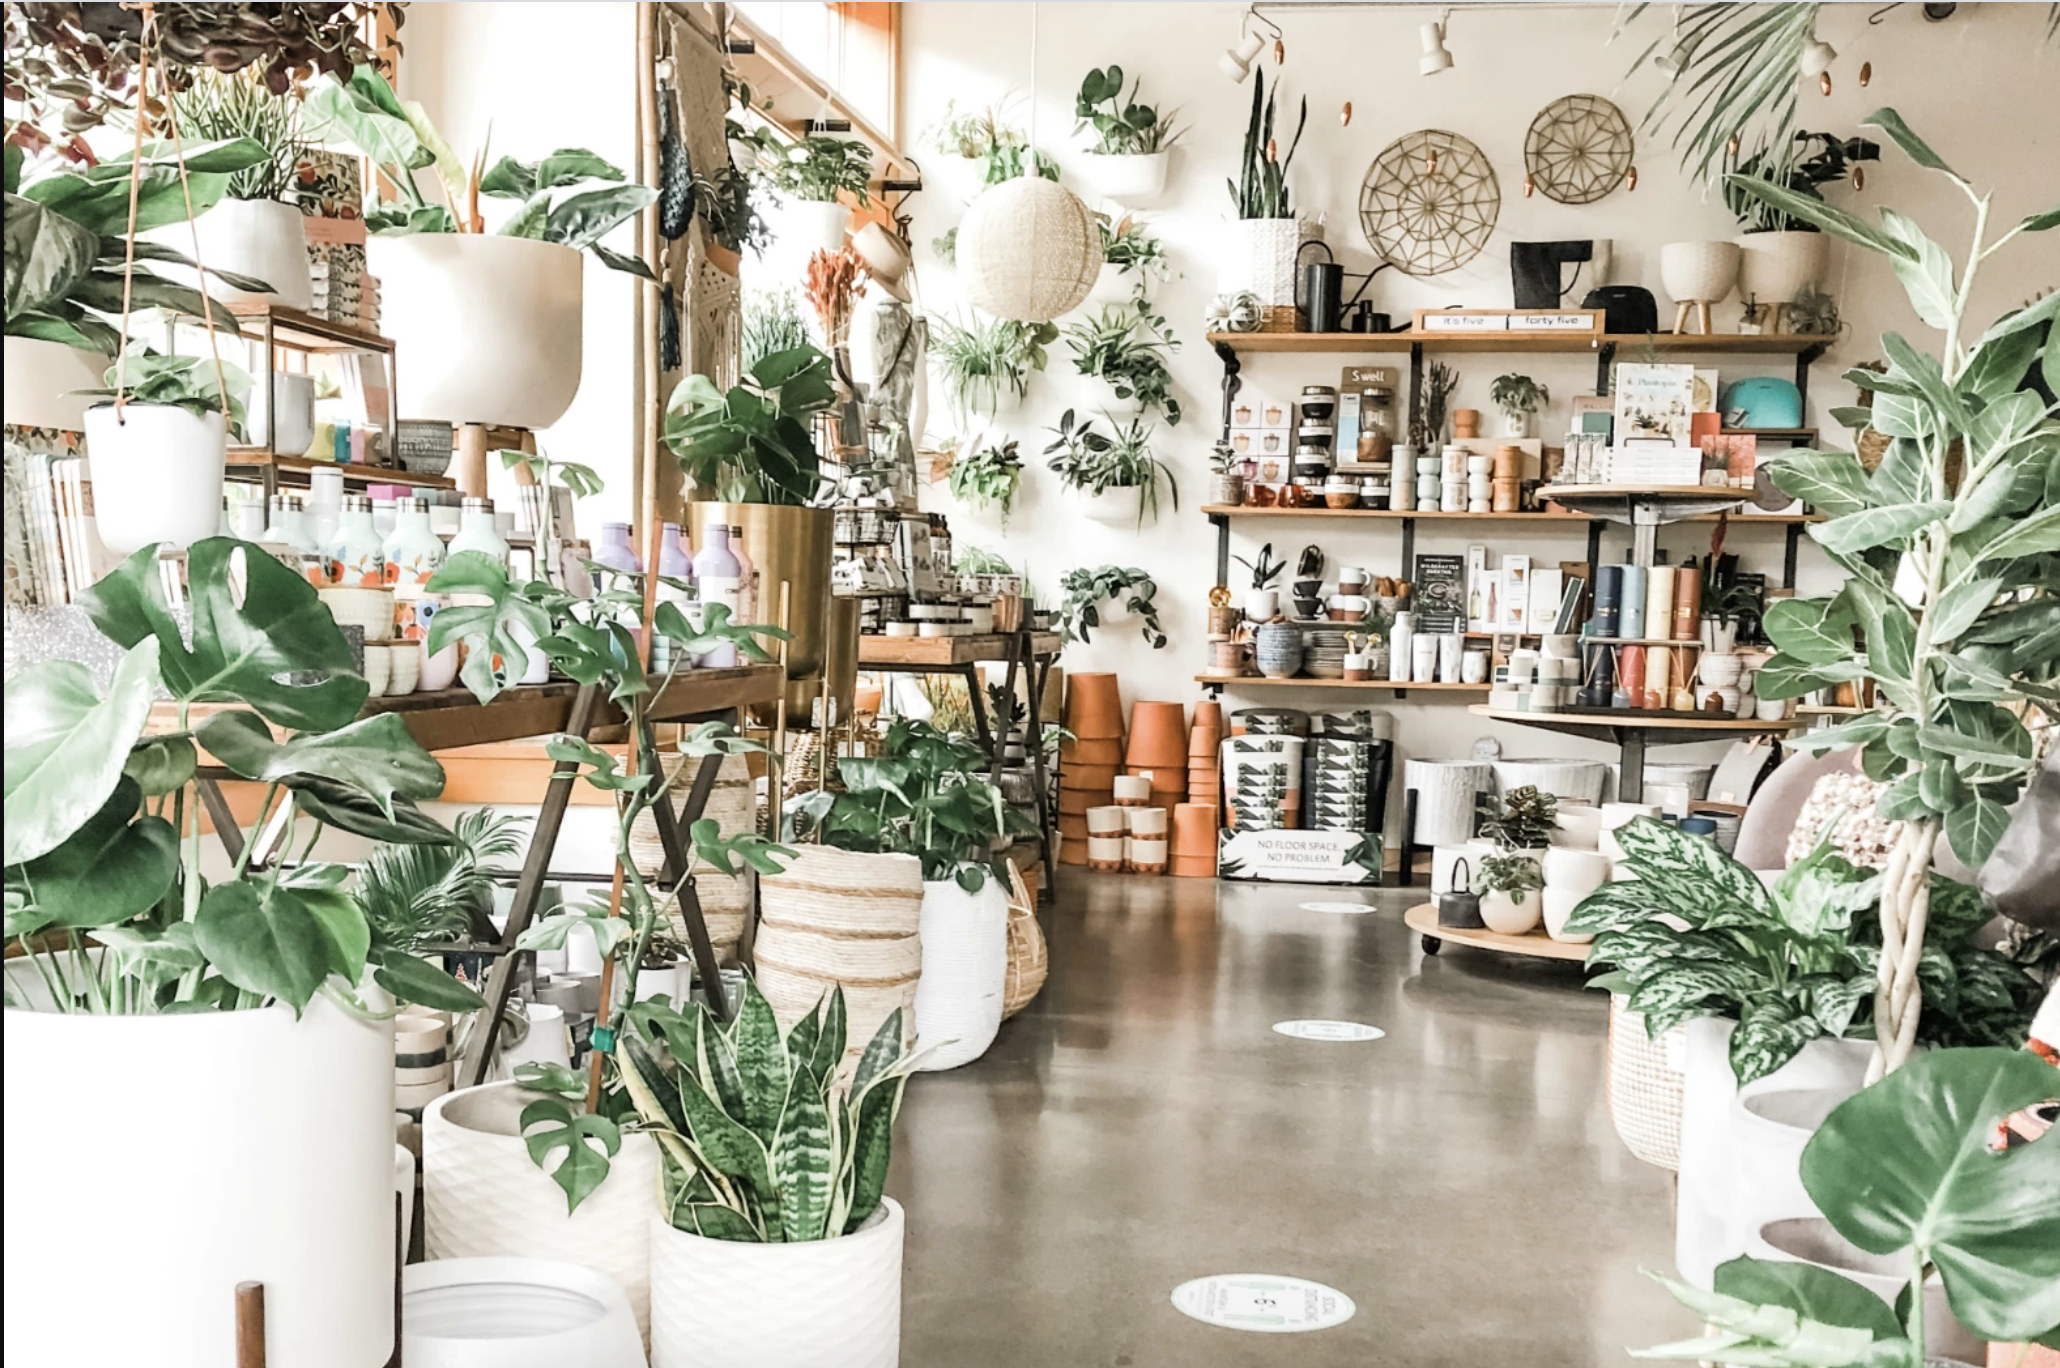 The store is packed with plants and plant supplies